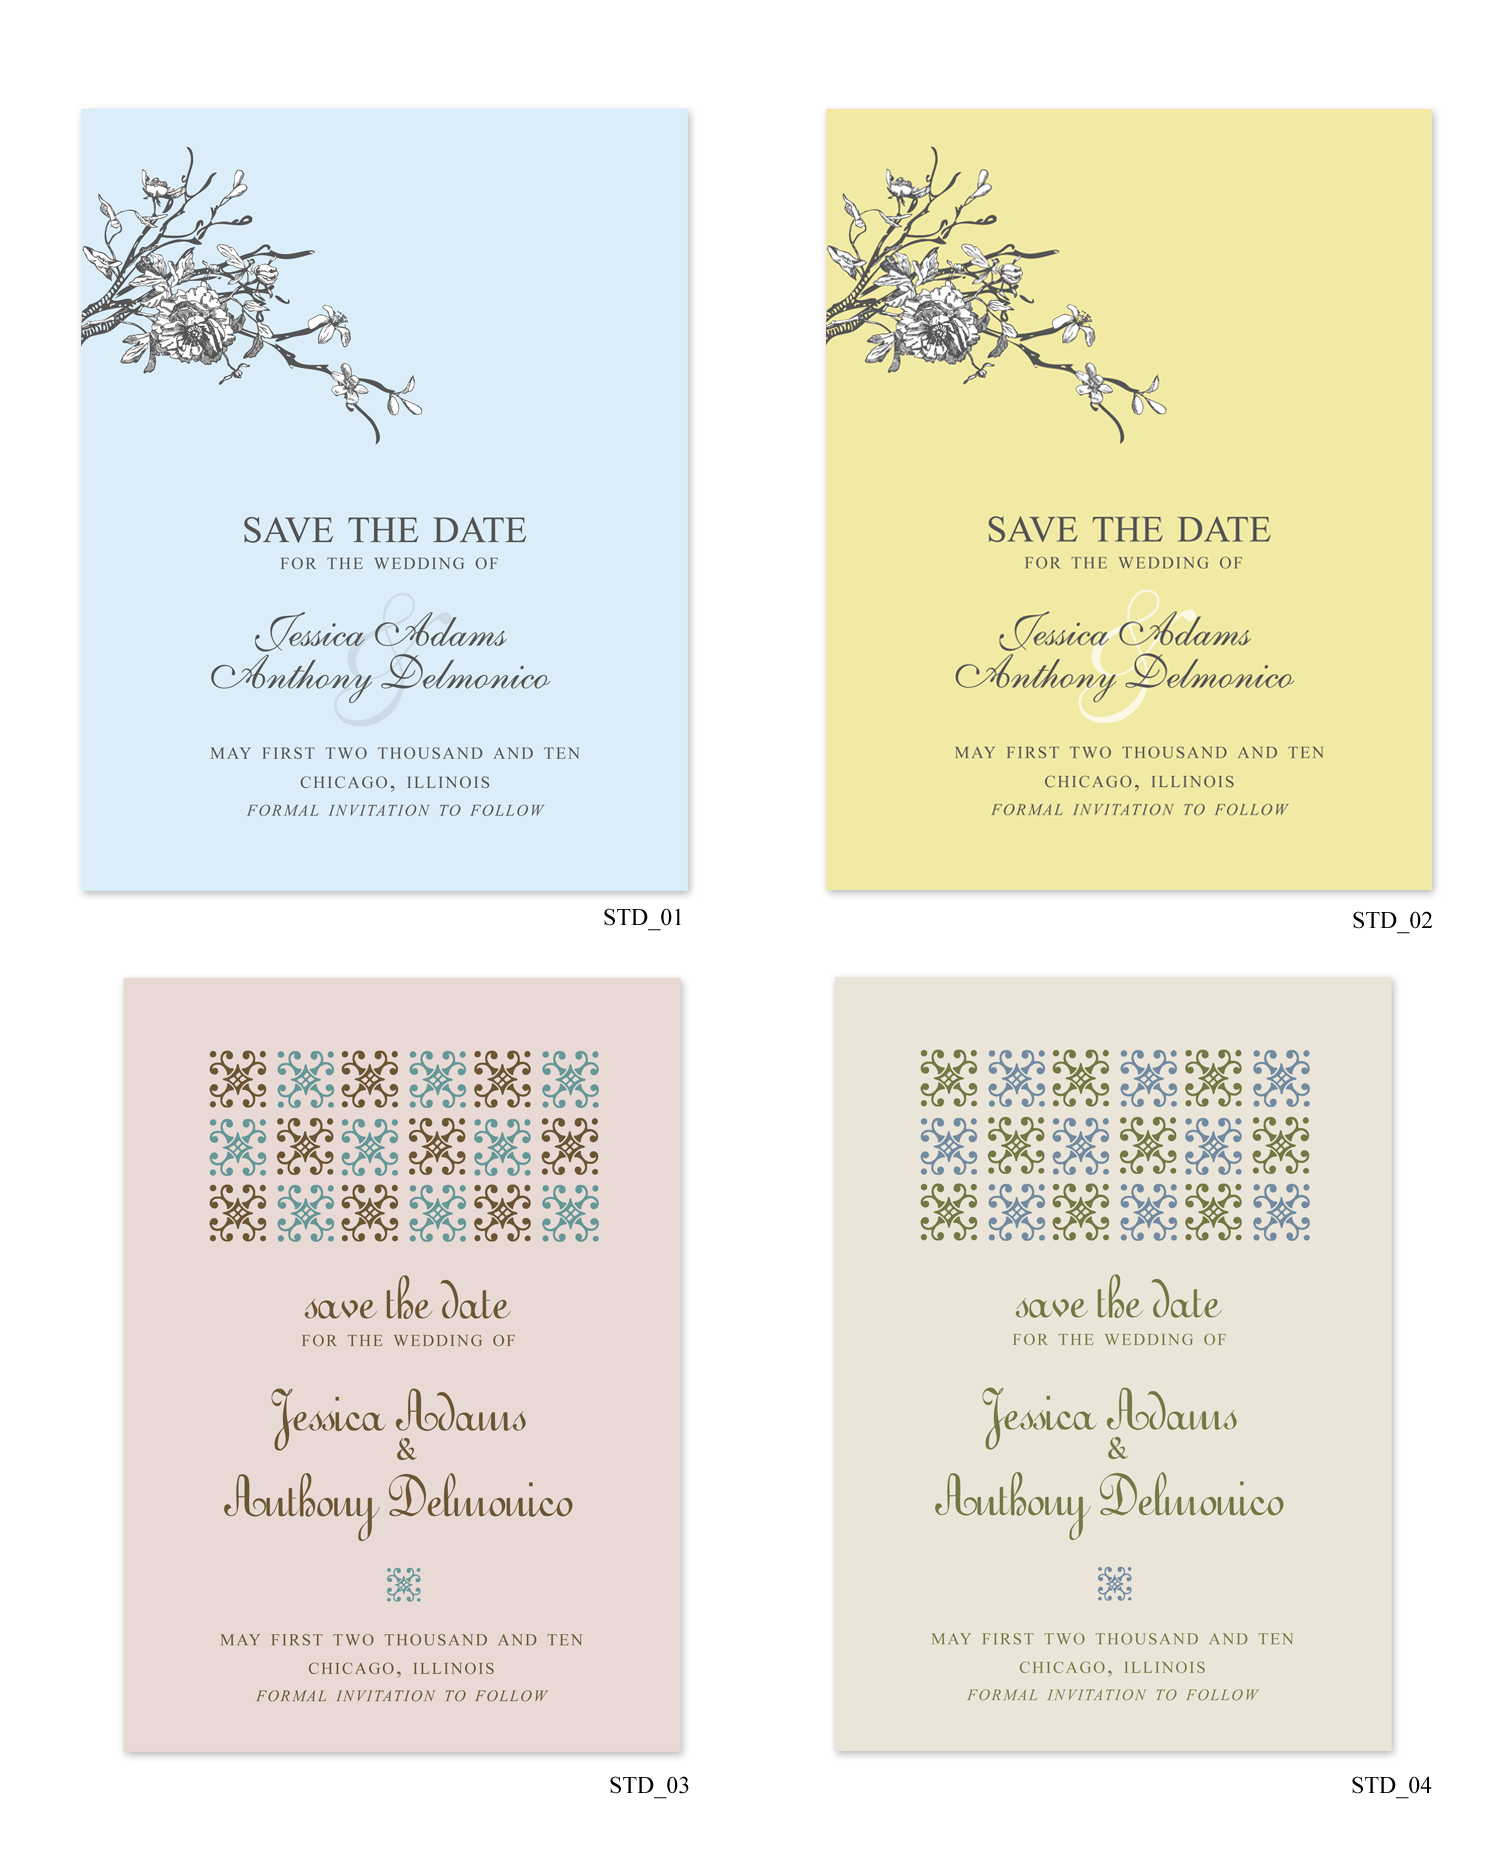 Monogram, Wedding, Custom, The, Ornate, Save, Date, Free, Std, Decorative